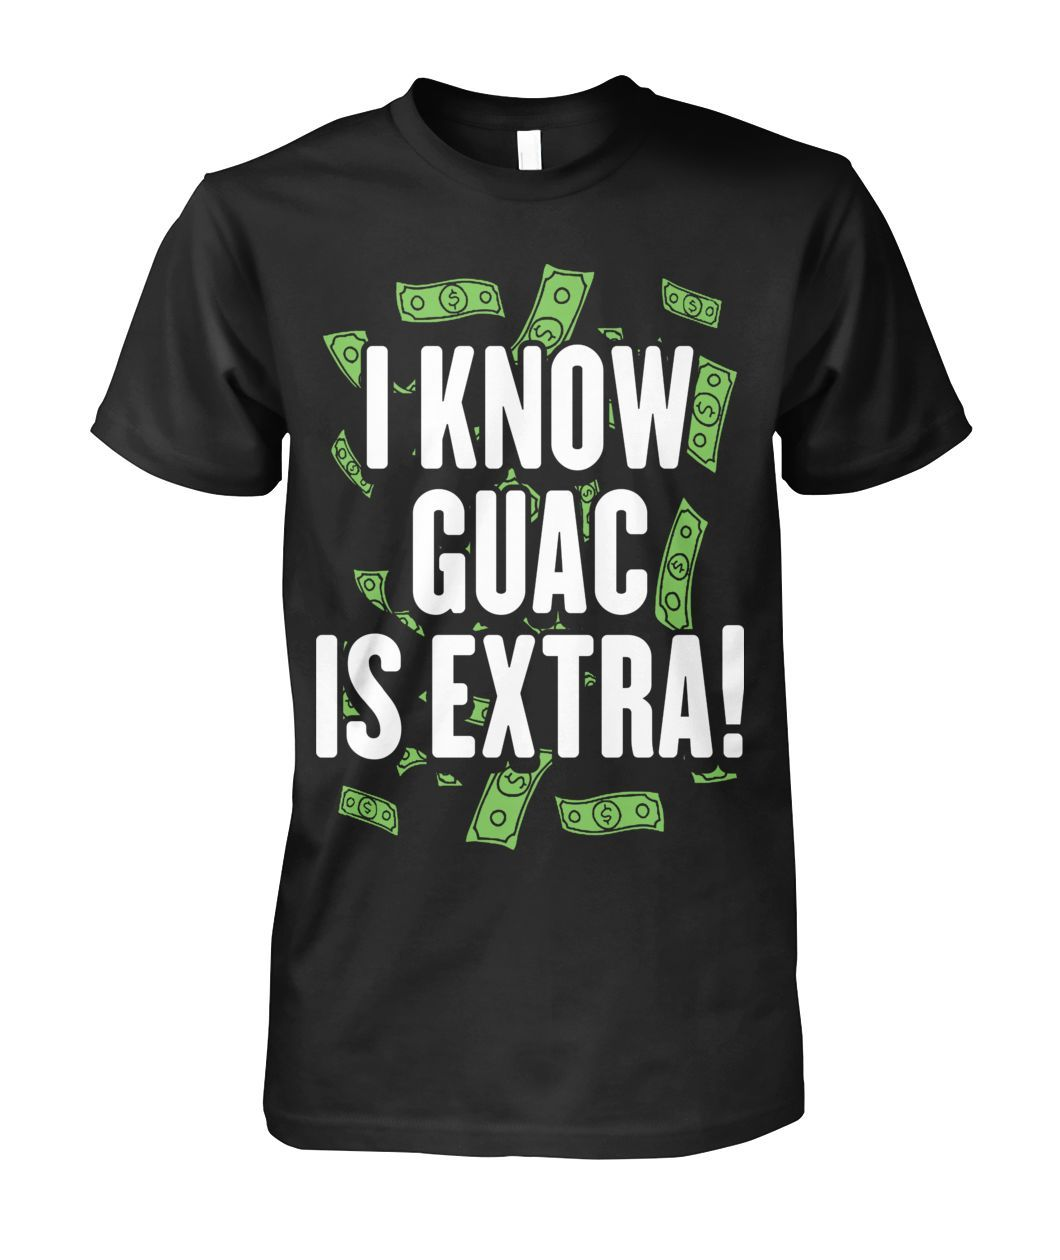 The Guac is Extra